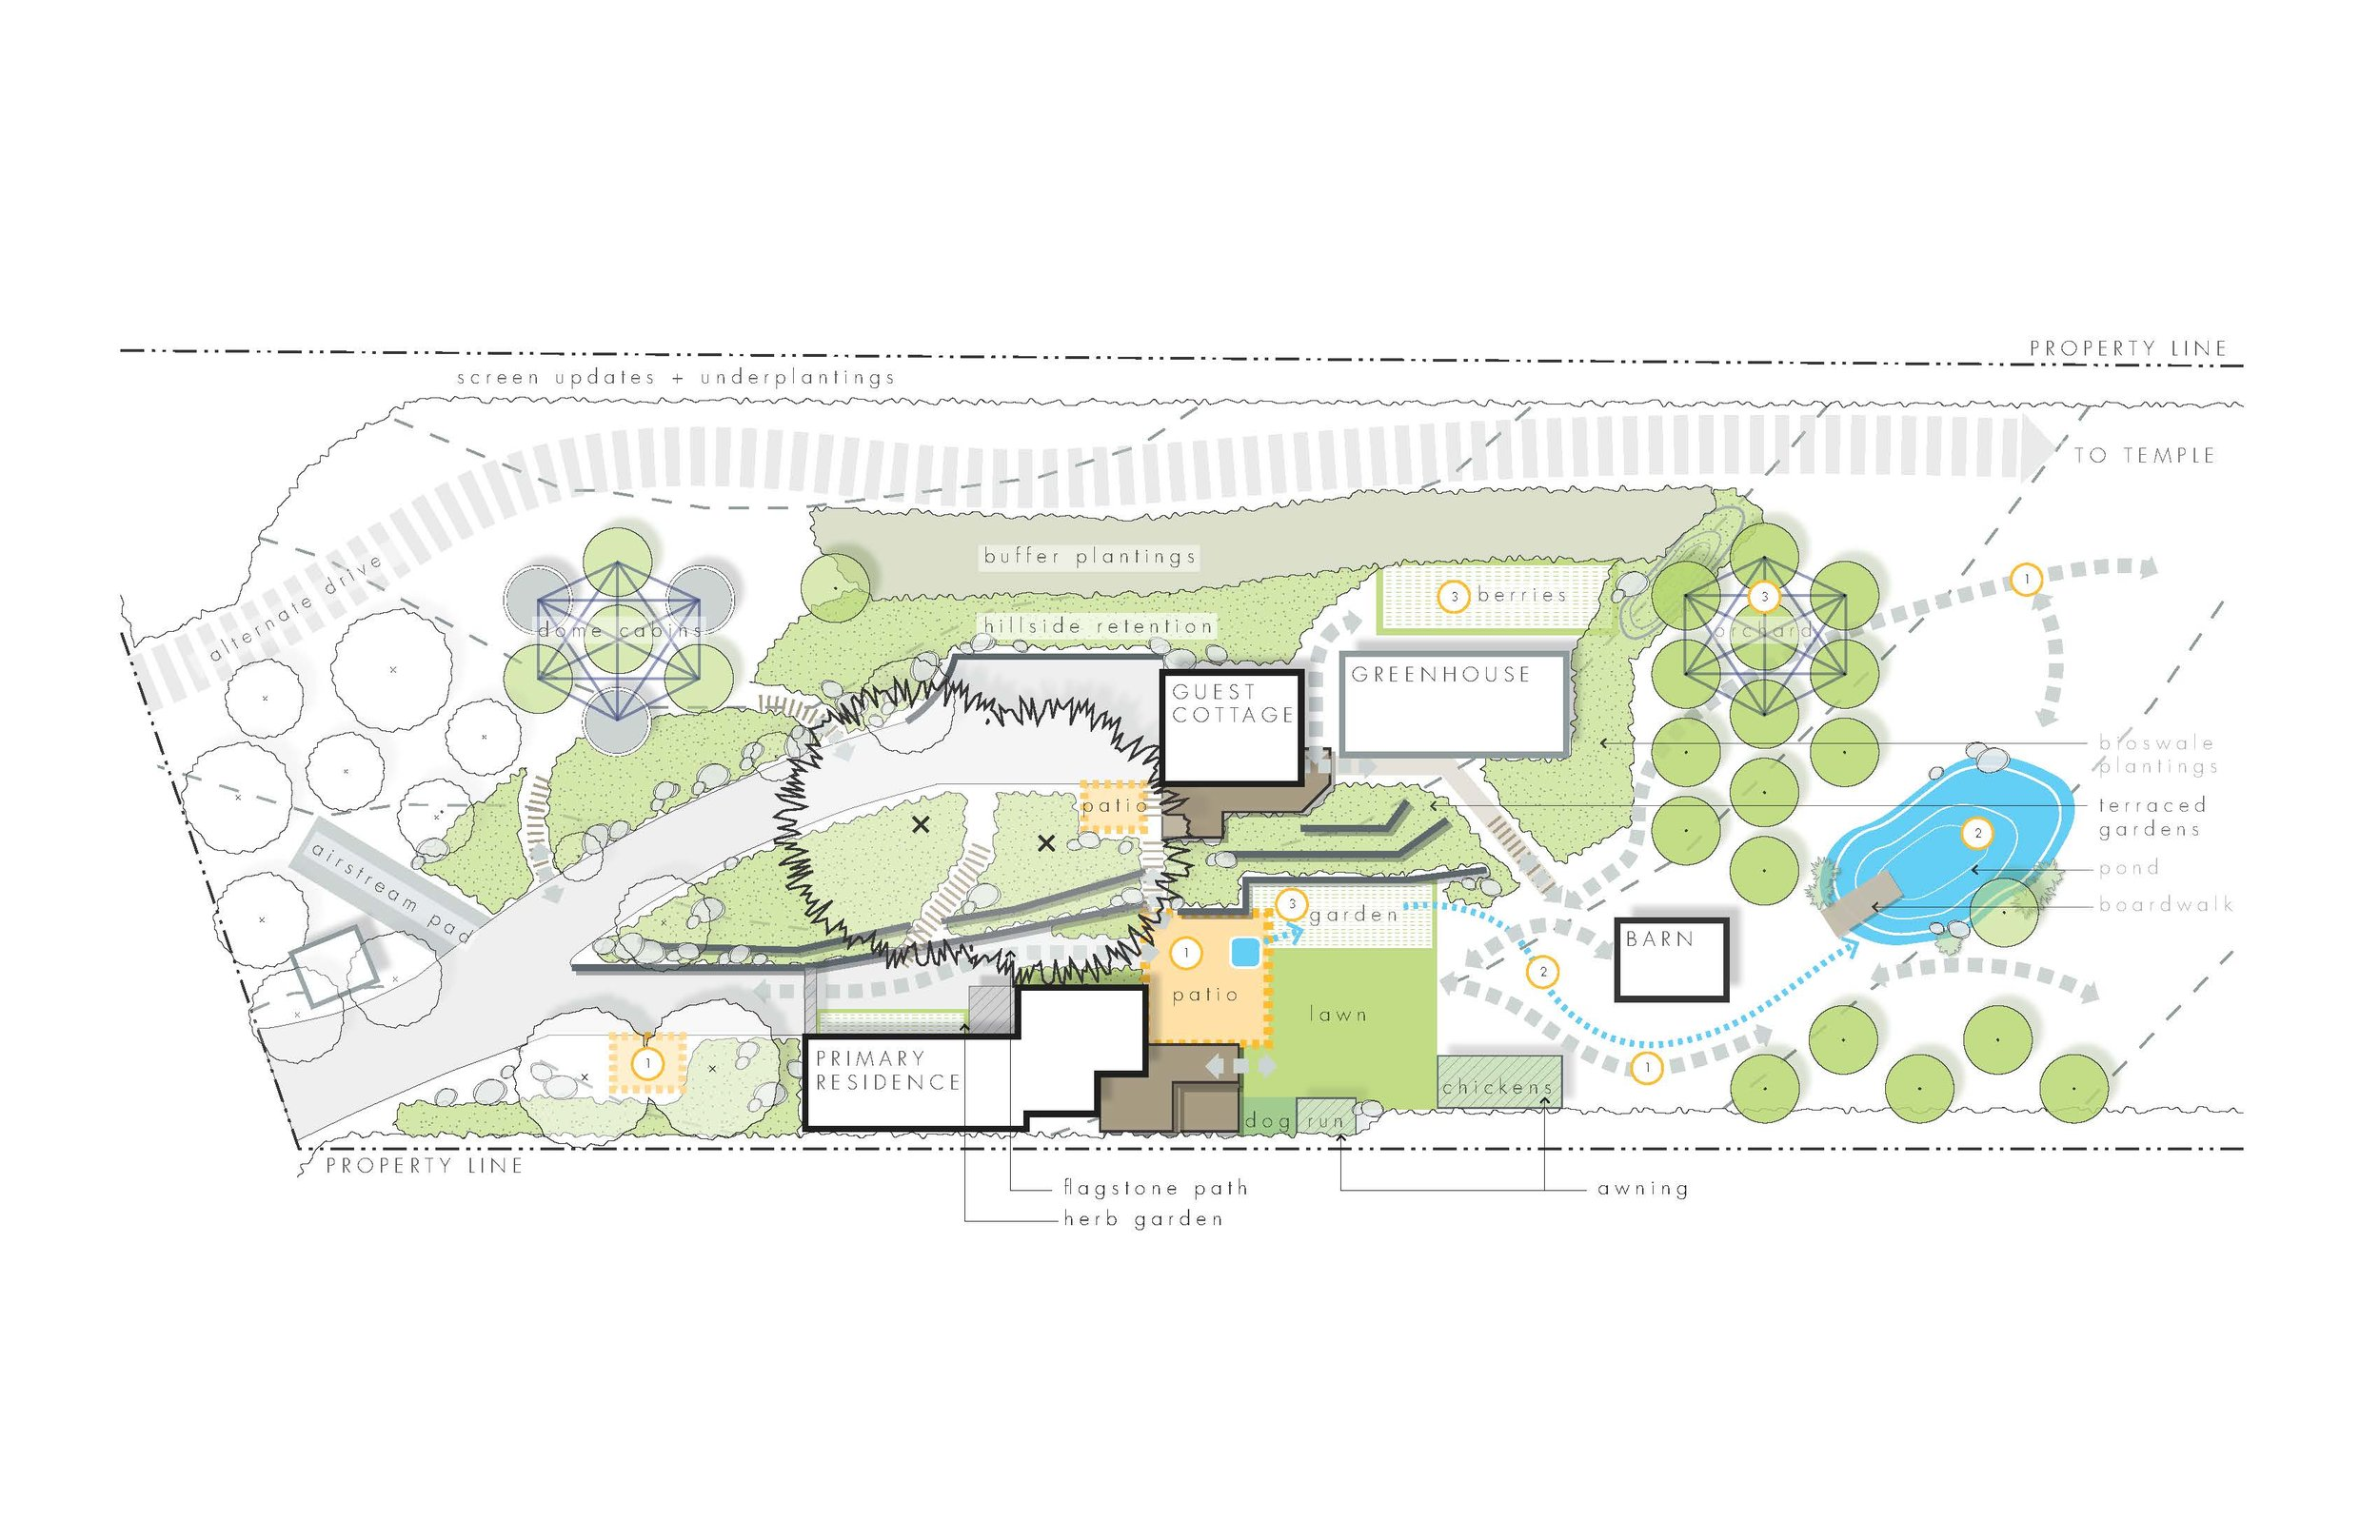 master plan example conceptual layout site planning landscape architecture schematic southern oregon [ 2500 x 1618 Pixel ]